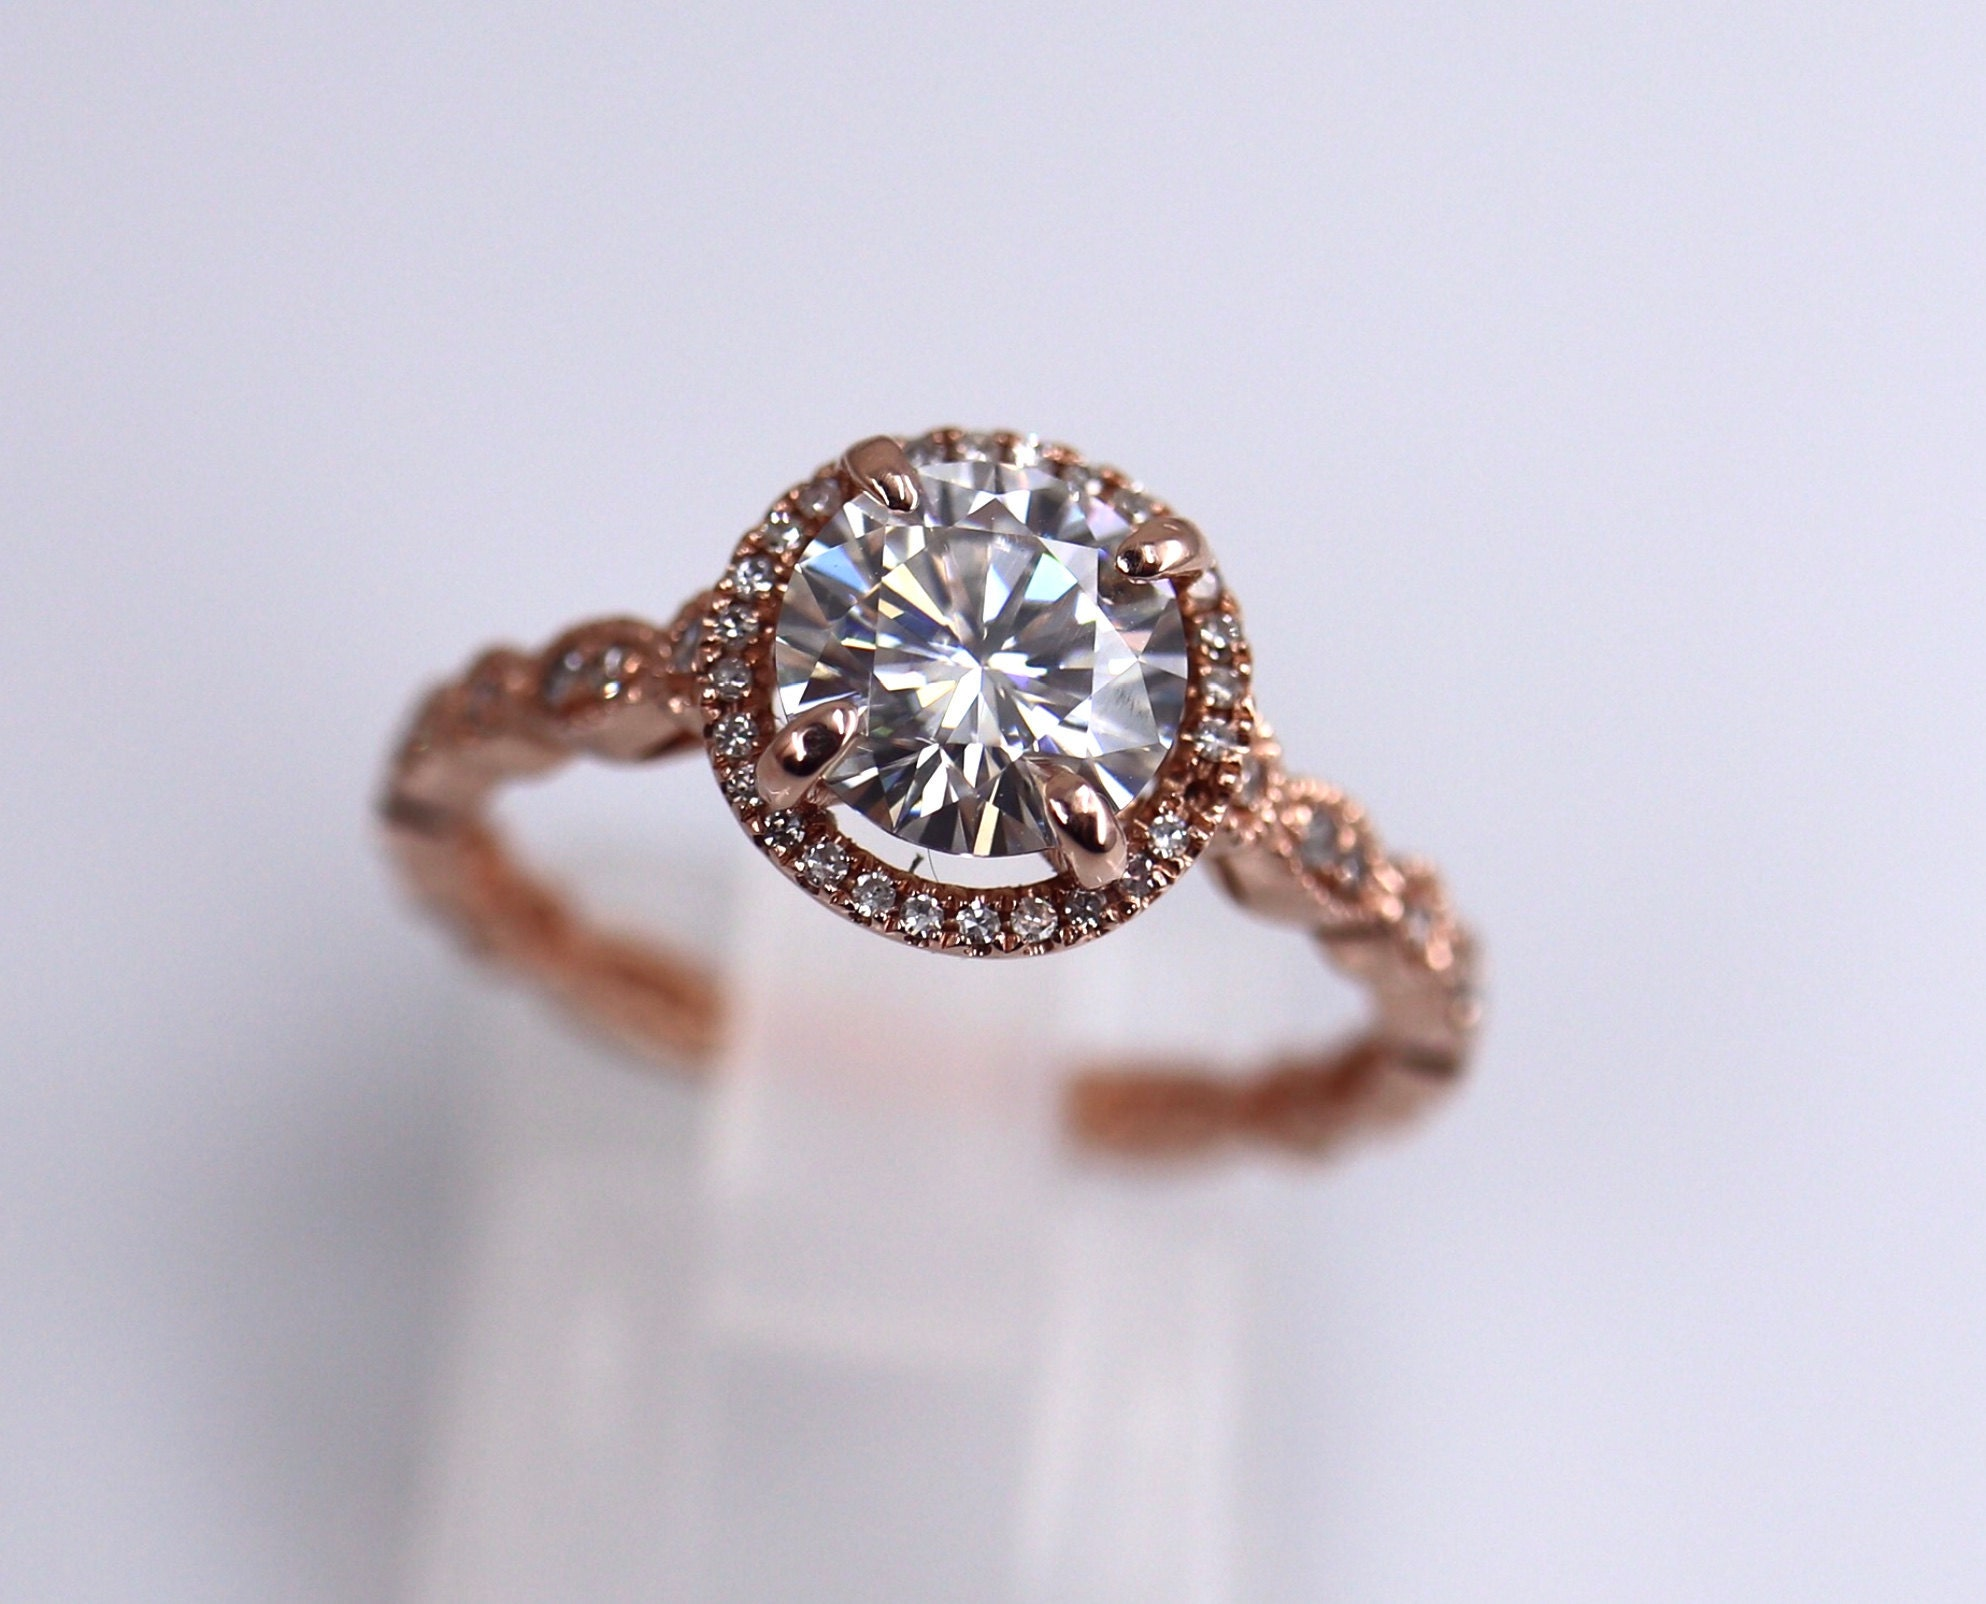 Halo Art Deco 7mm round def ring rose gold. Stunning! And sold!